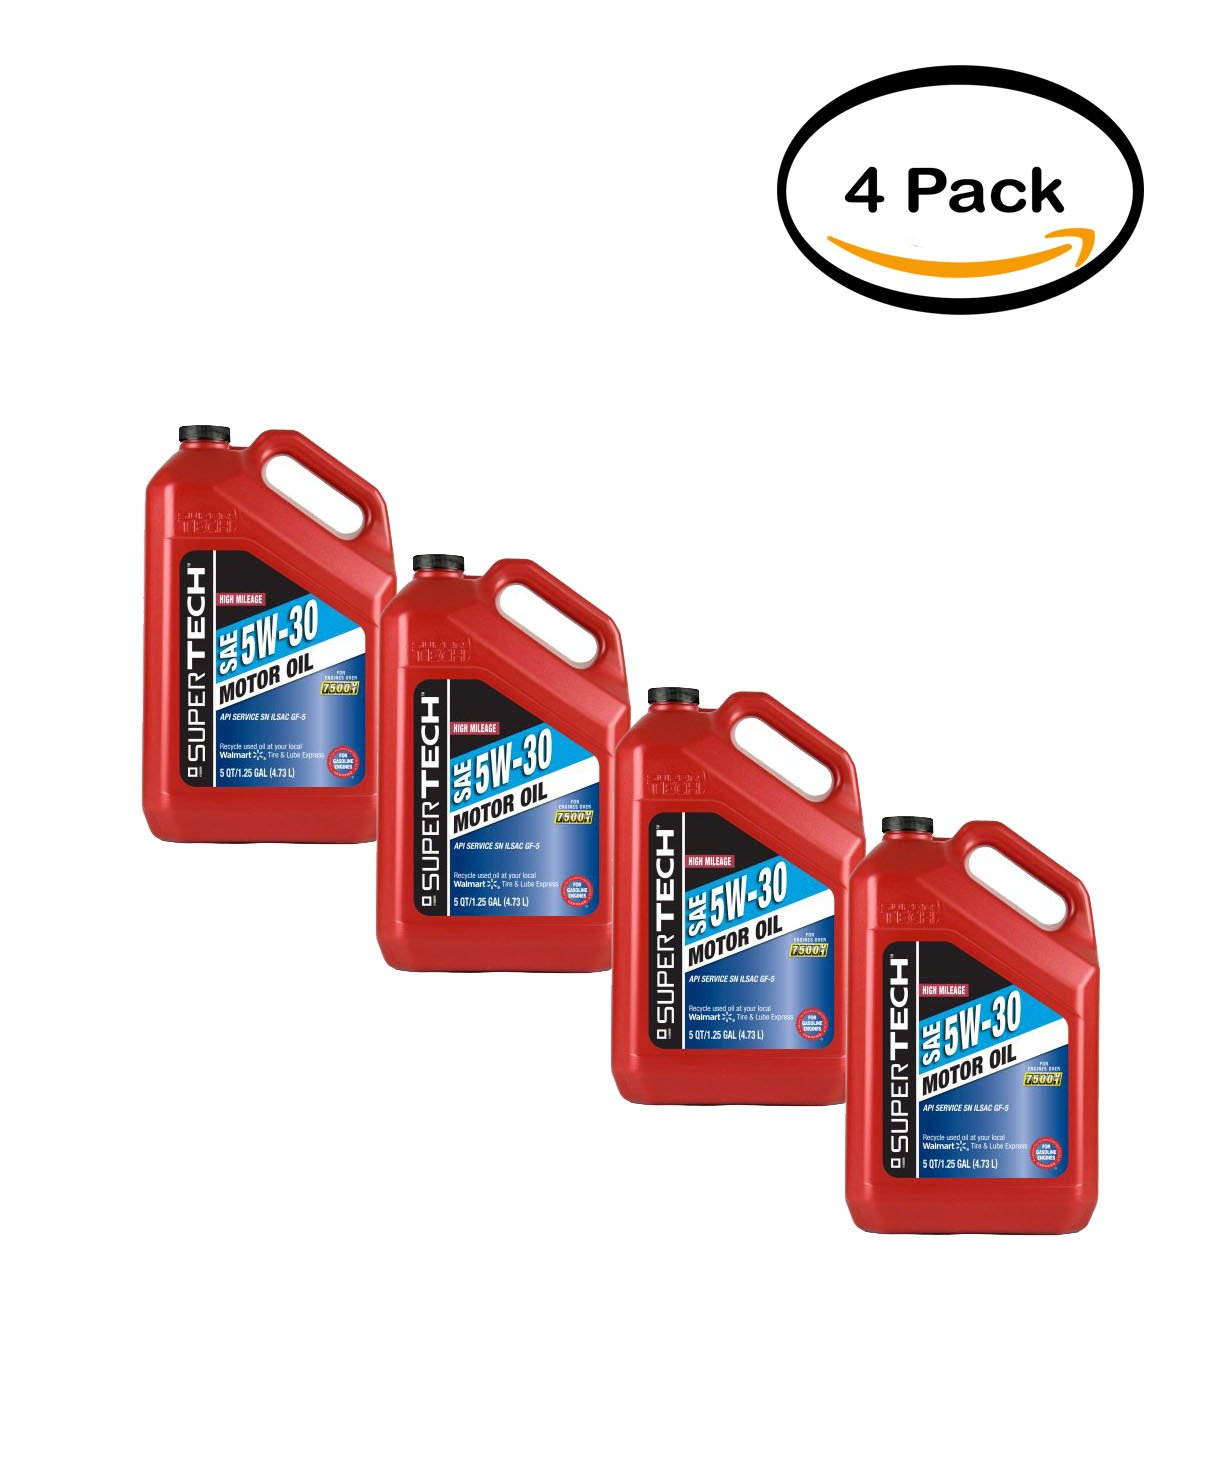 Pack de 4 - Super Tech High Mileage 5W30 aceite de motor, 5 qt: Amazon.es: Jardín